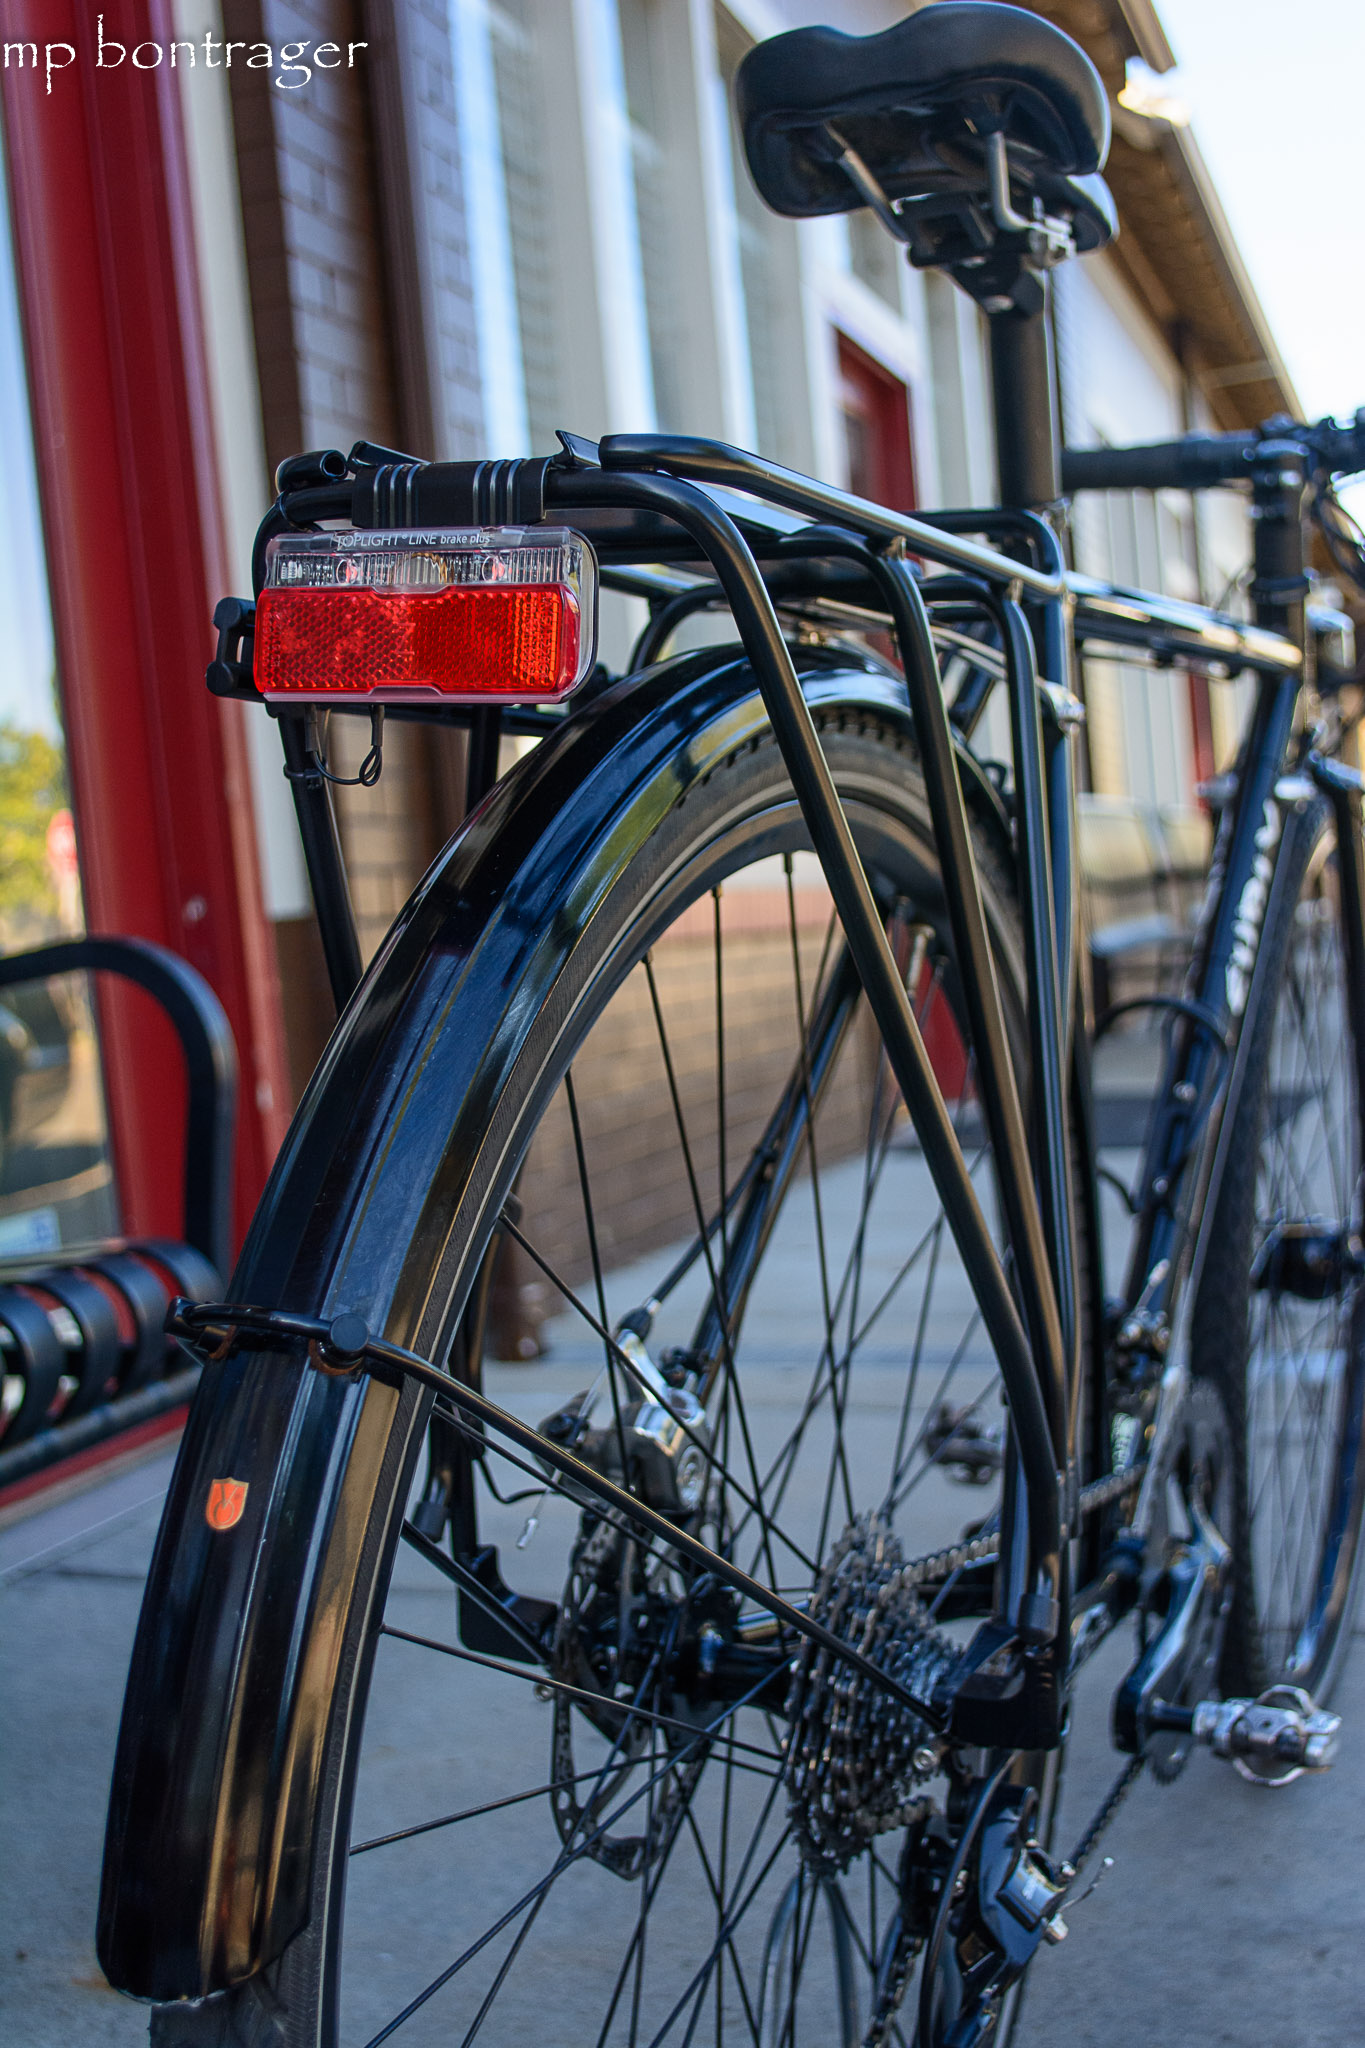 Toplight Line Plus BrakeTec, light pulses as the cyclist brakes